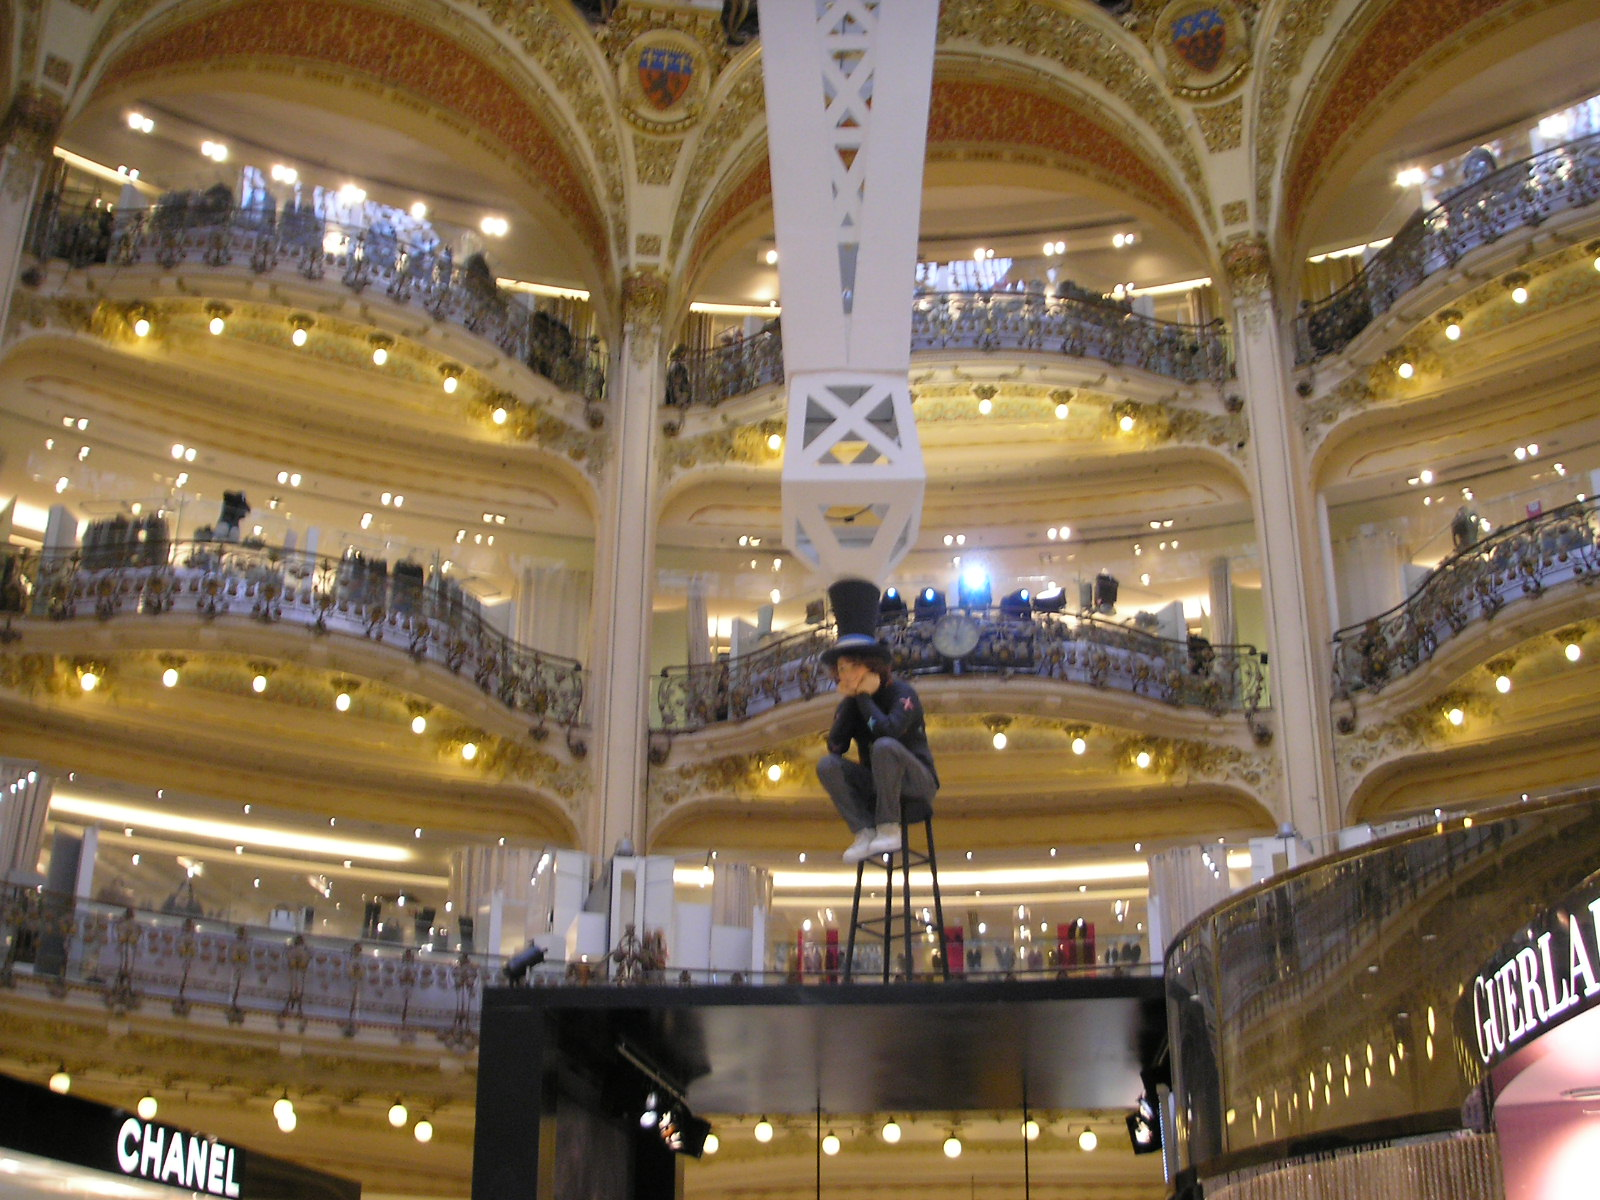 https://upload.wikimedia.org/wikipedia/commons/0/03/Galeries_Lafayette_Paris_interieur_Oct_2007_004.jpg